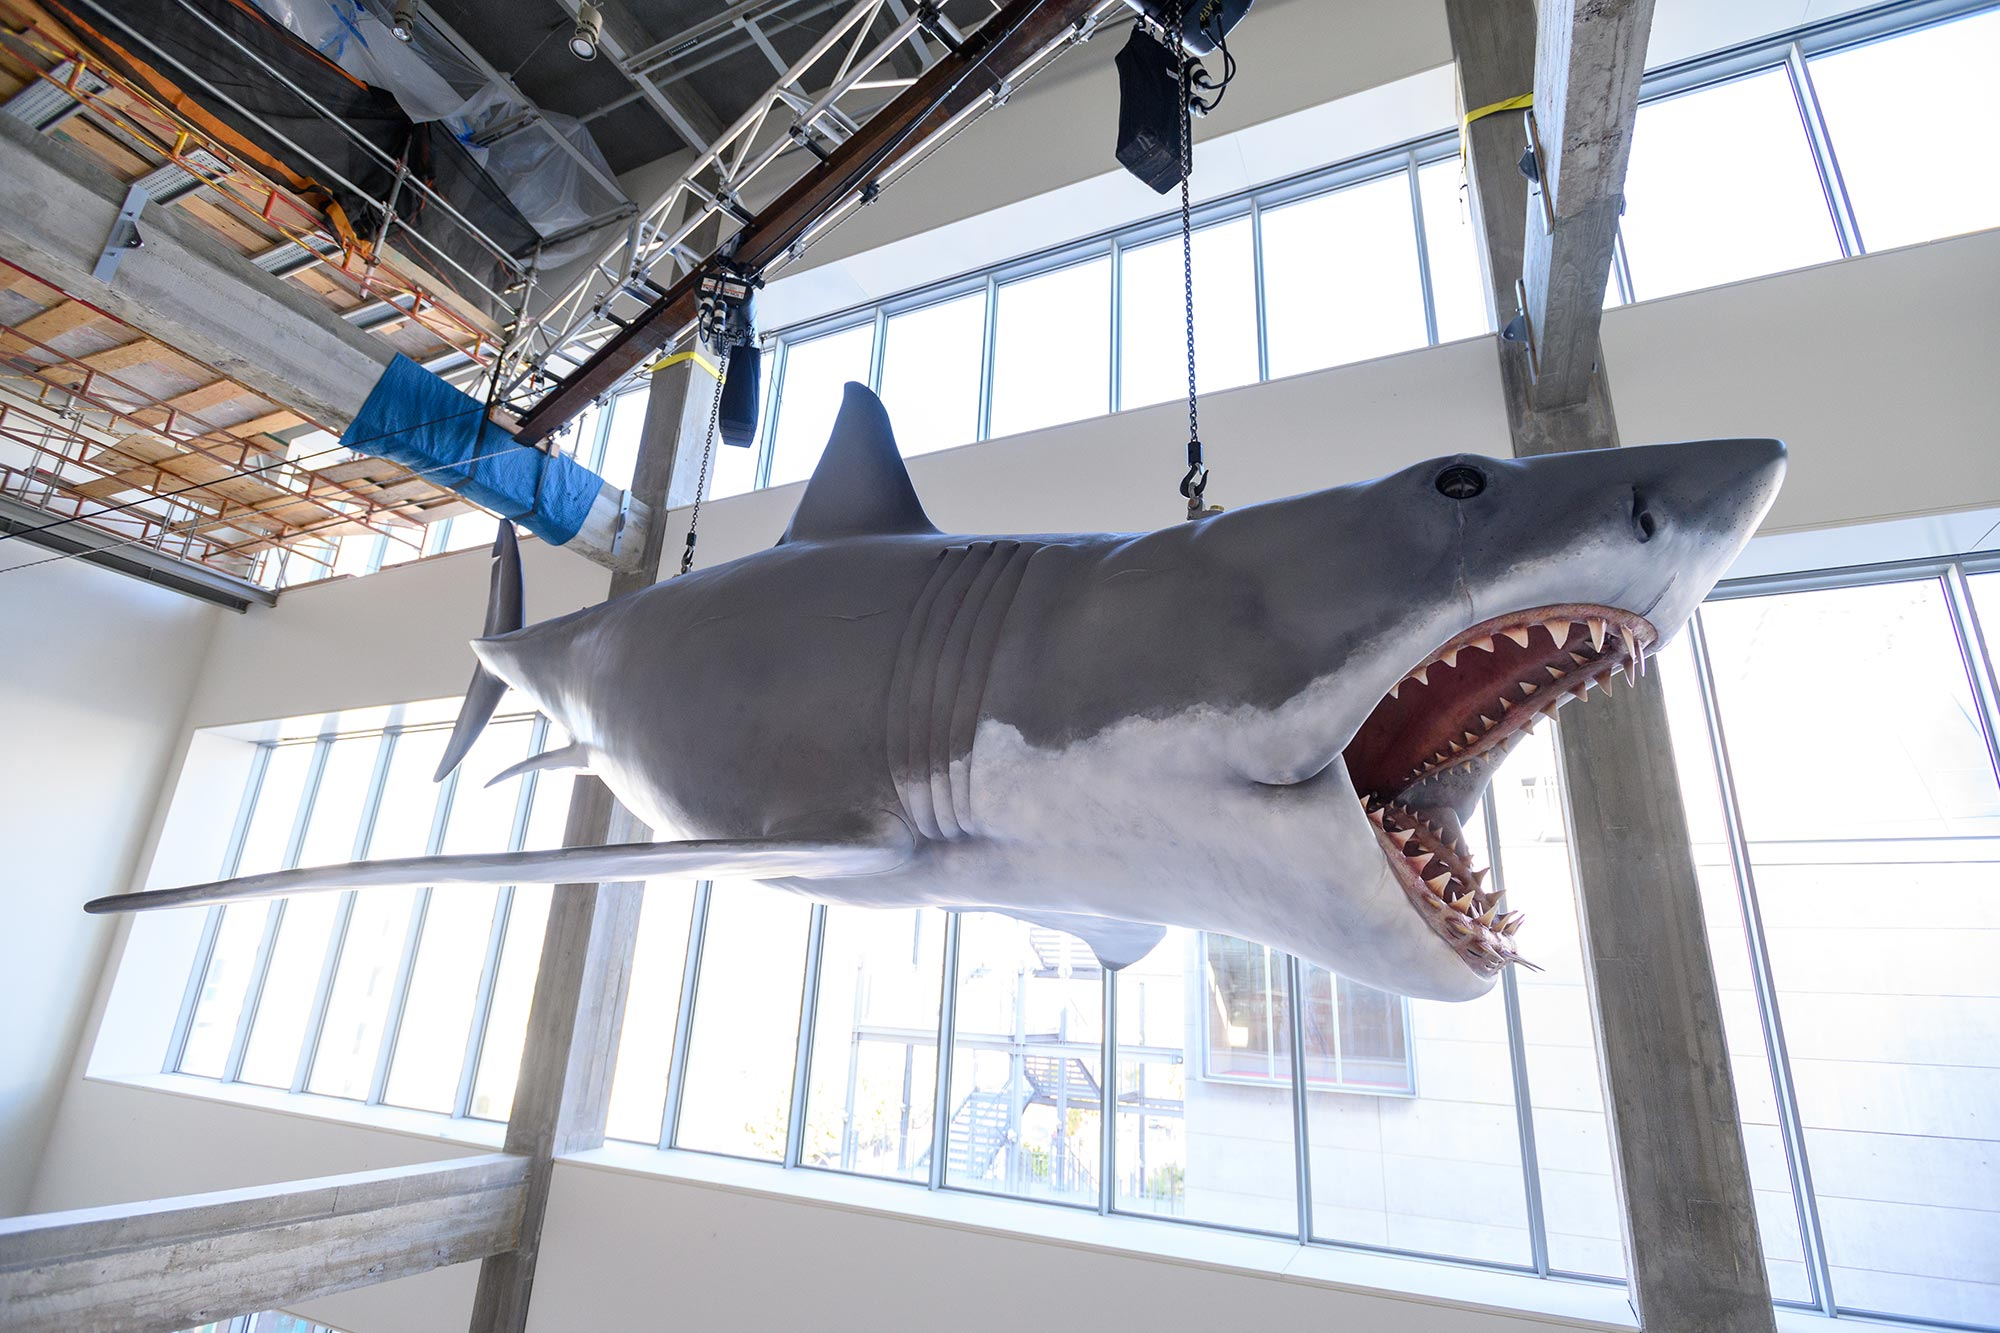 Bruce the shark from Jaws at the Academy Museum